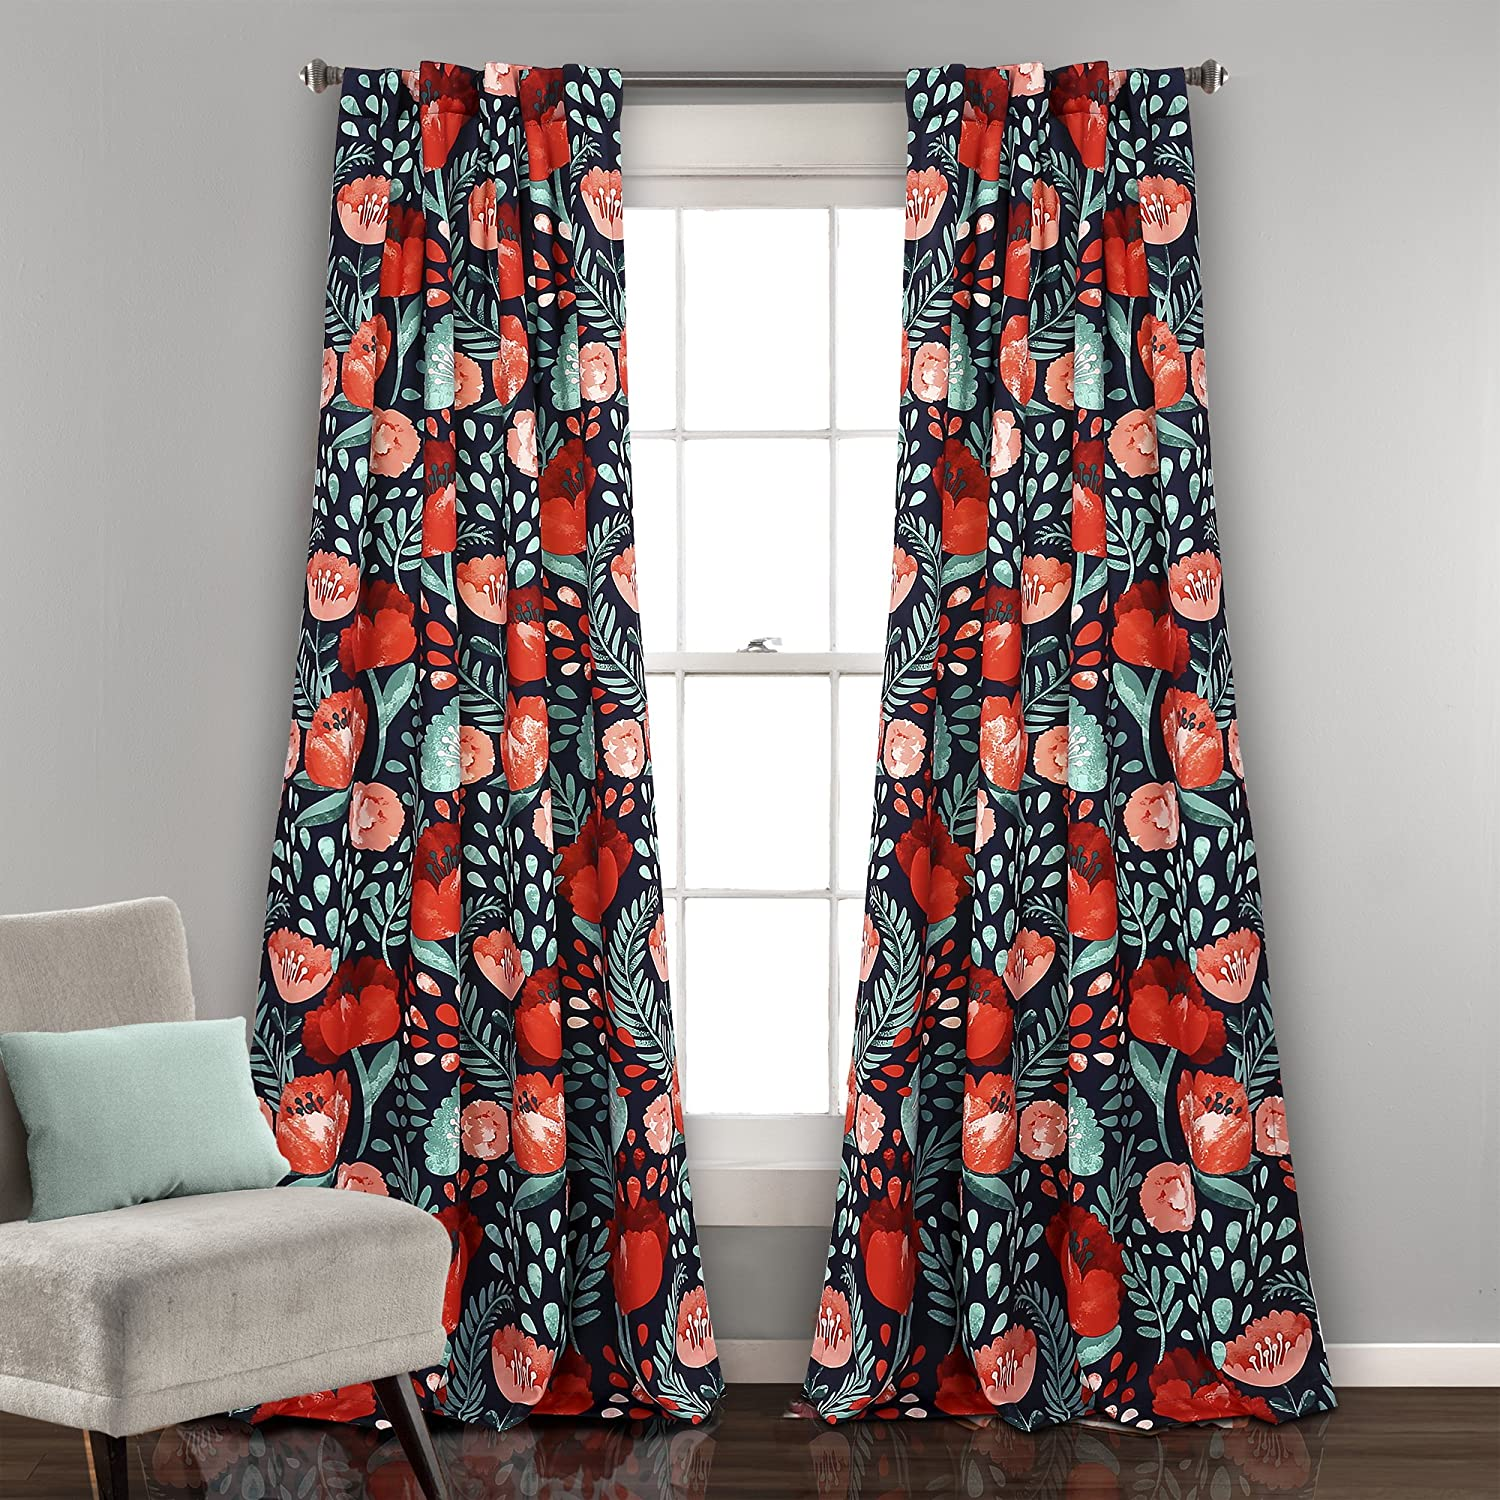 "Lush Decor Poppy Garden Curtains Room Darkening Window Panel Set for Living, Dining, Bedroom (Pair), 84"" x 52"", Navy"